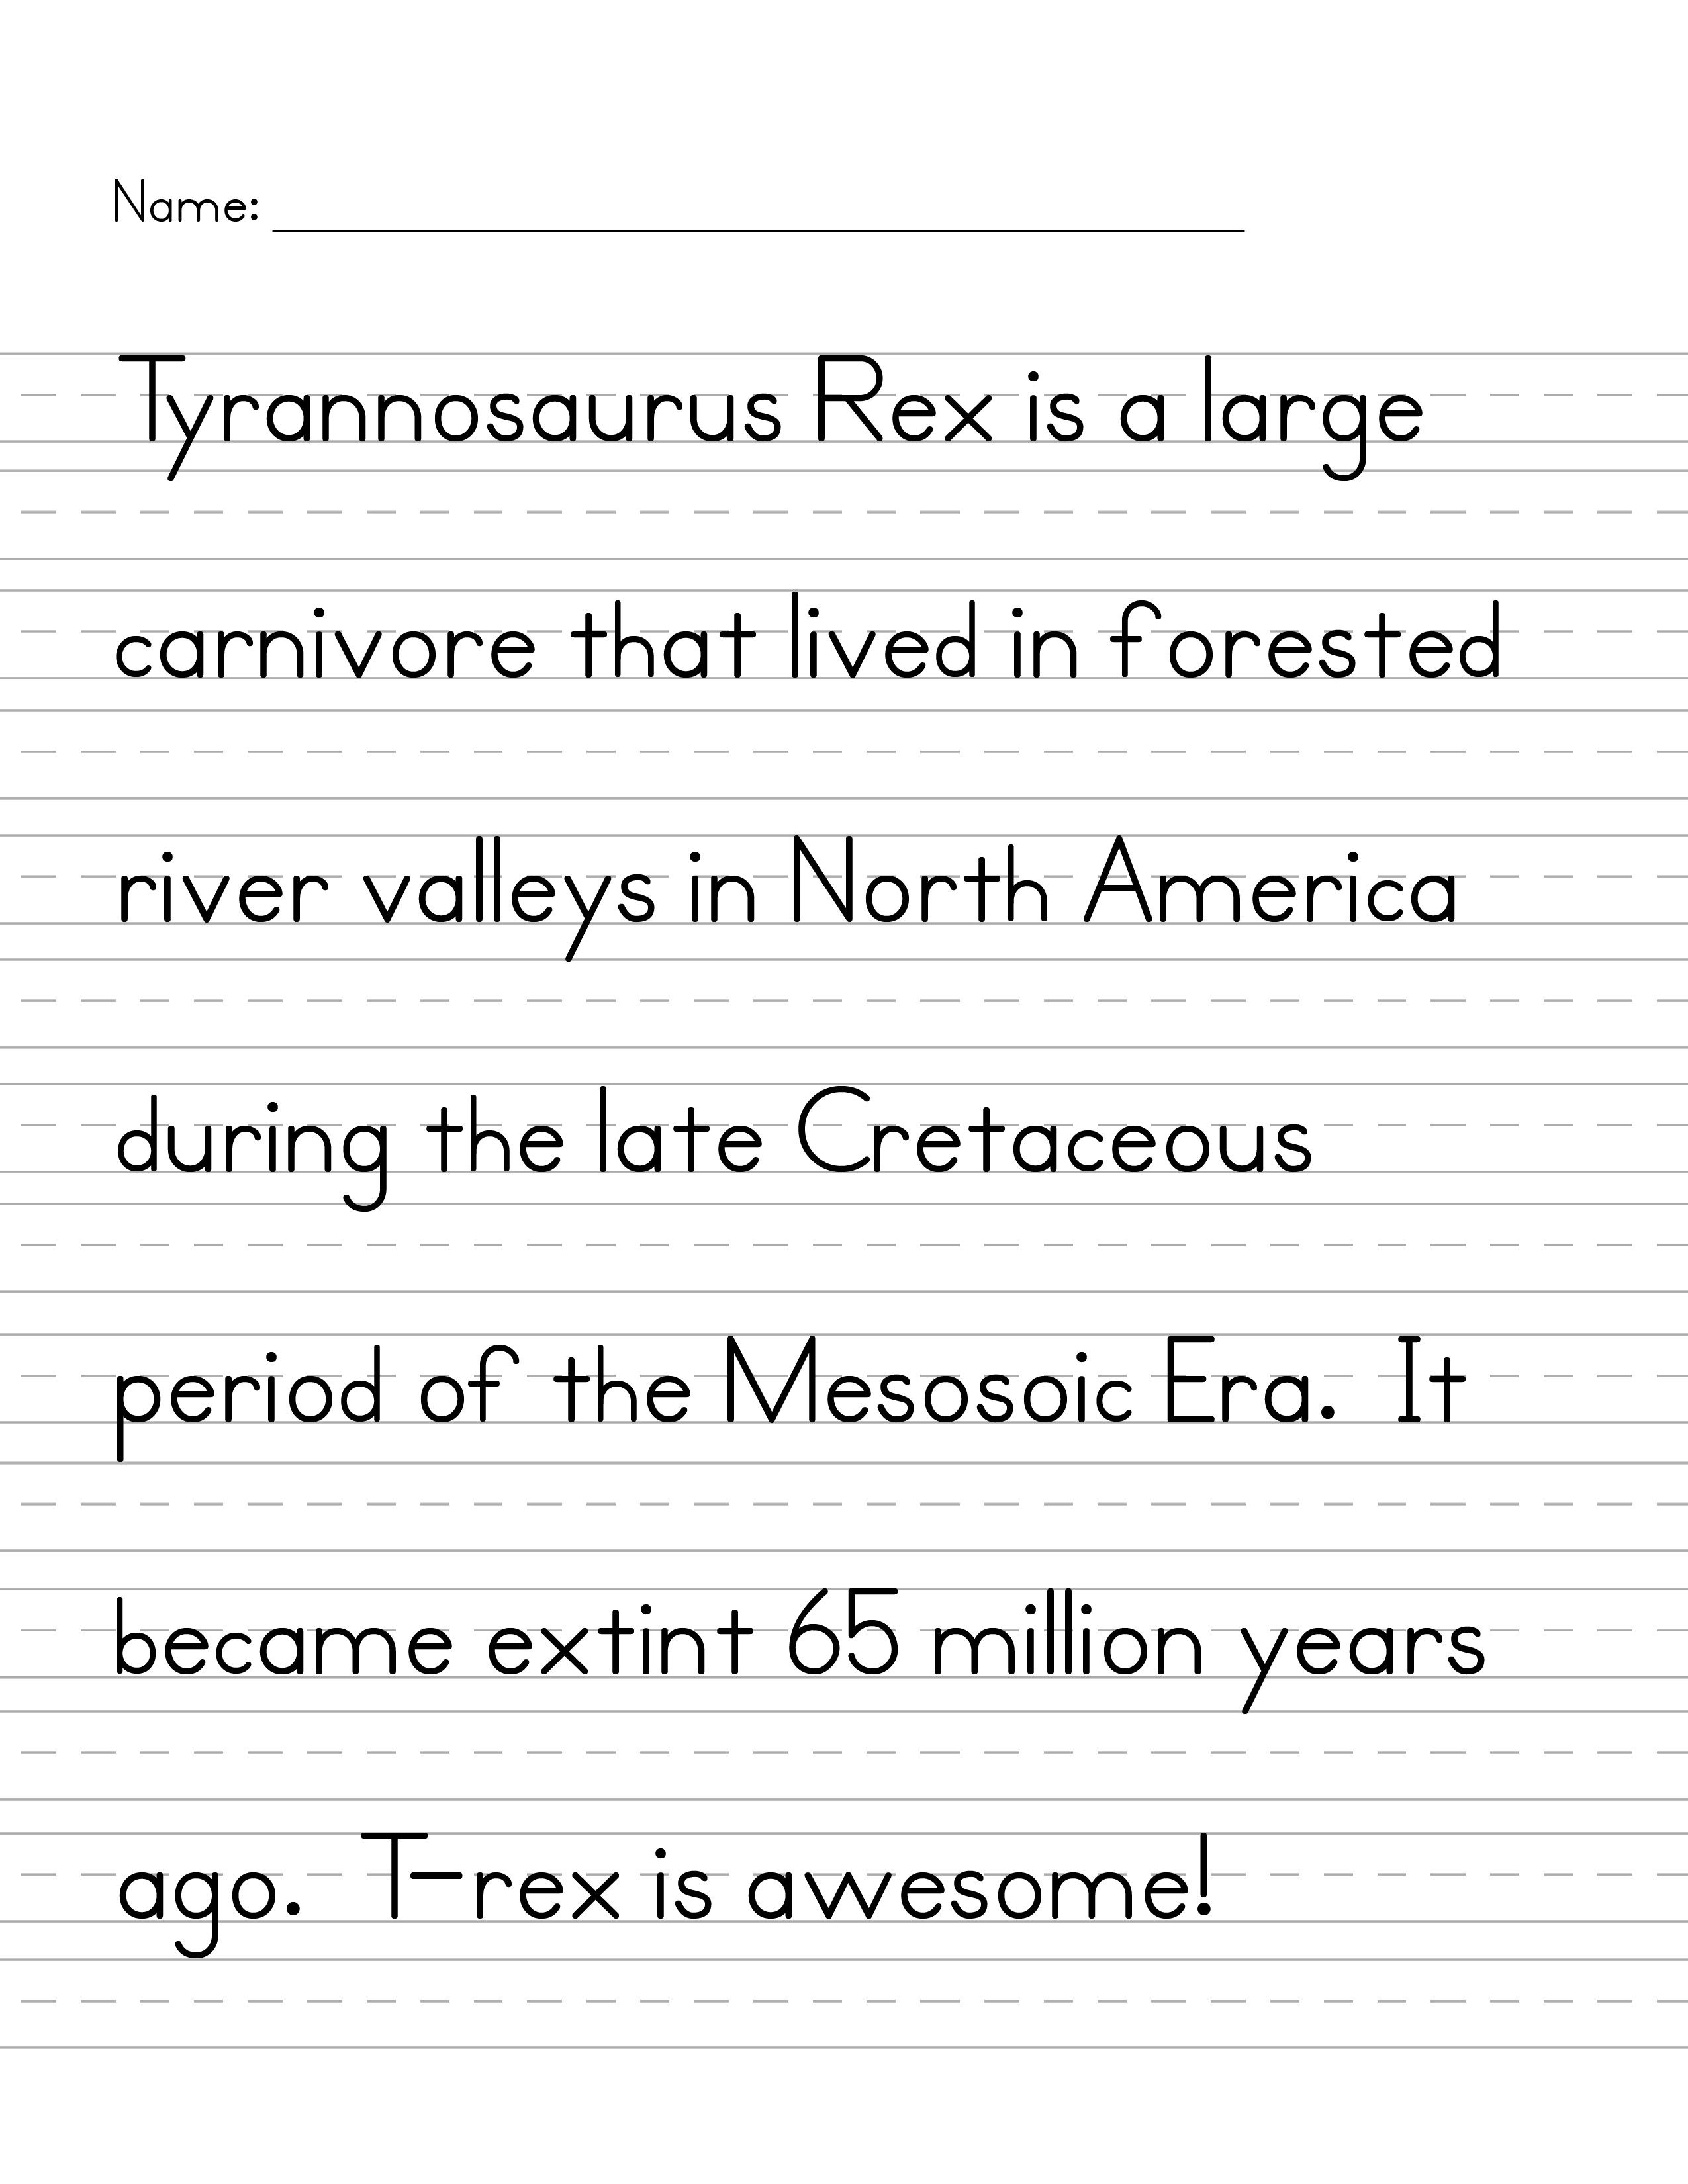 Worksheet Print Handwriting Worksheets handwriting t rex jpg practice pinterest